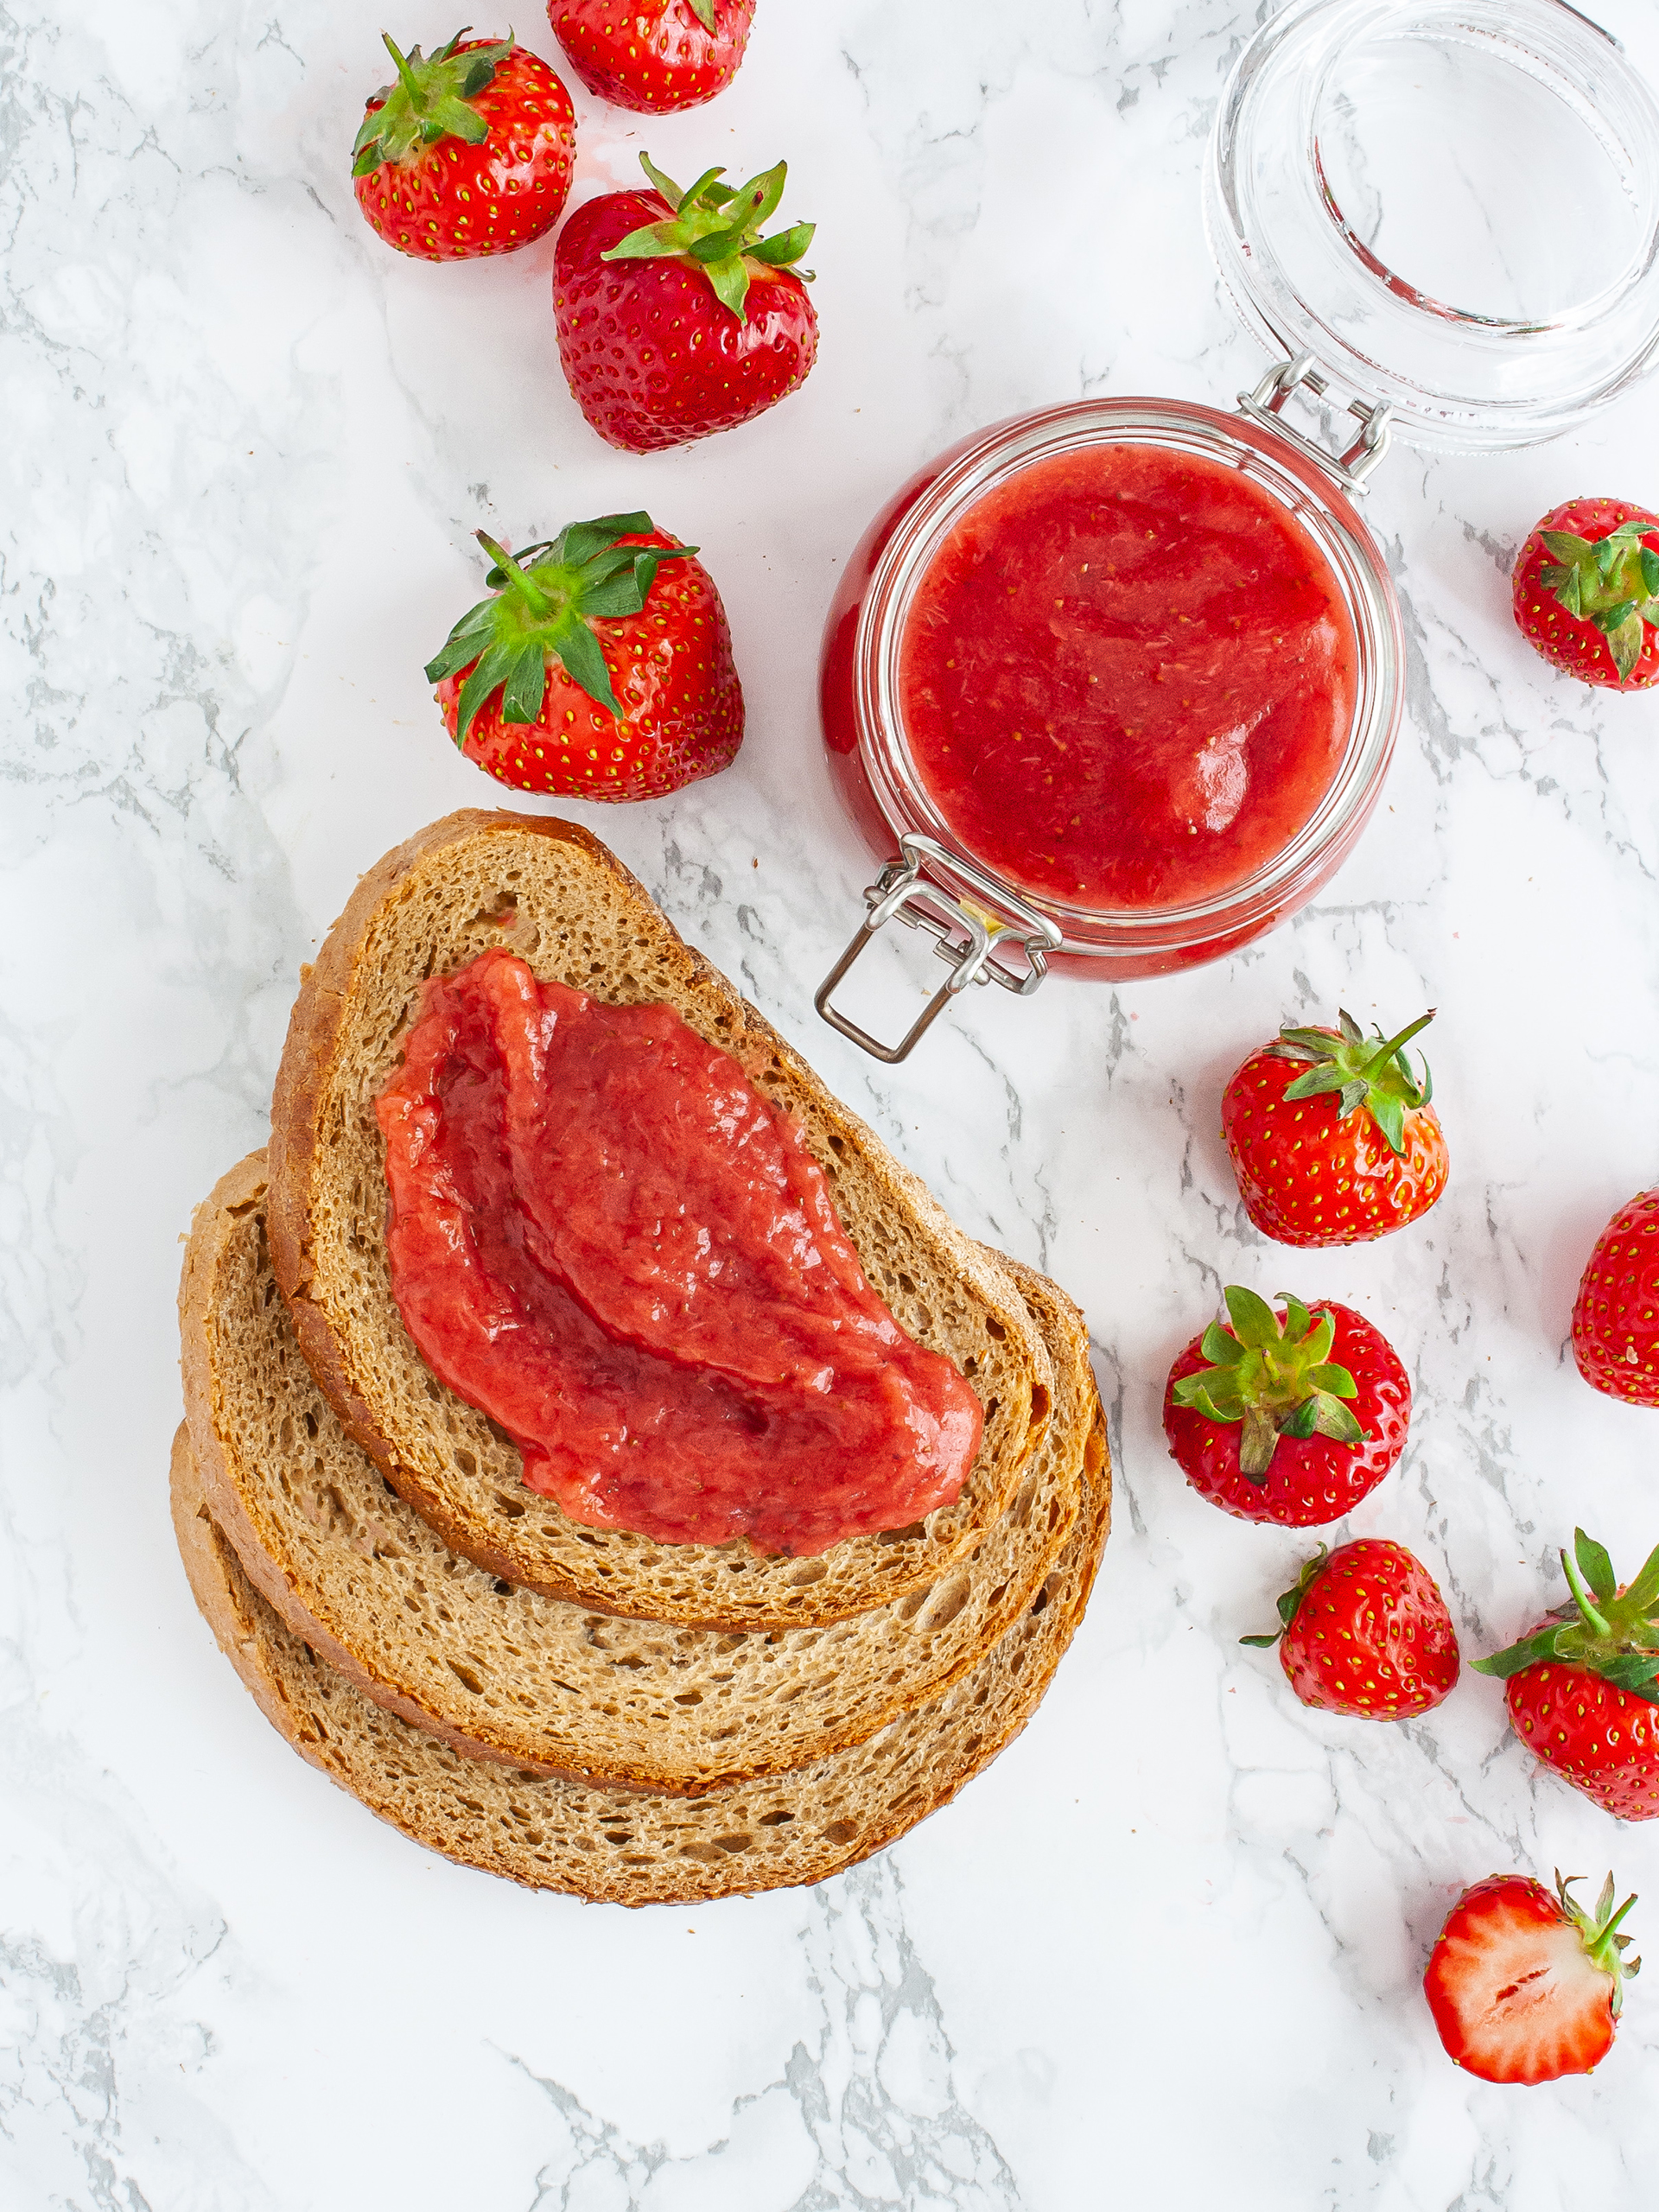 Sugar Free Strawberry Jam without Pectin Preview